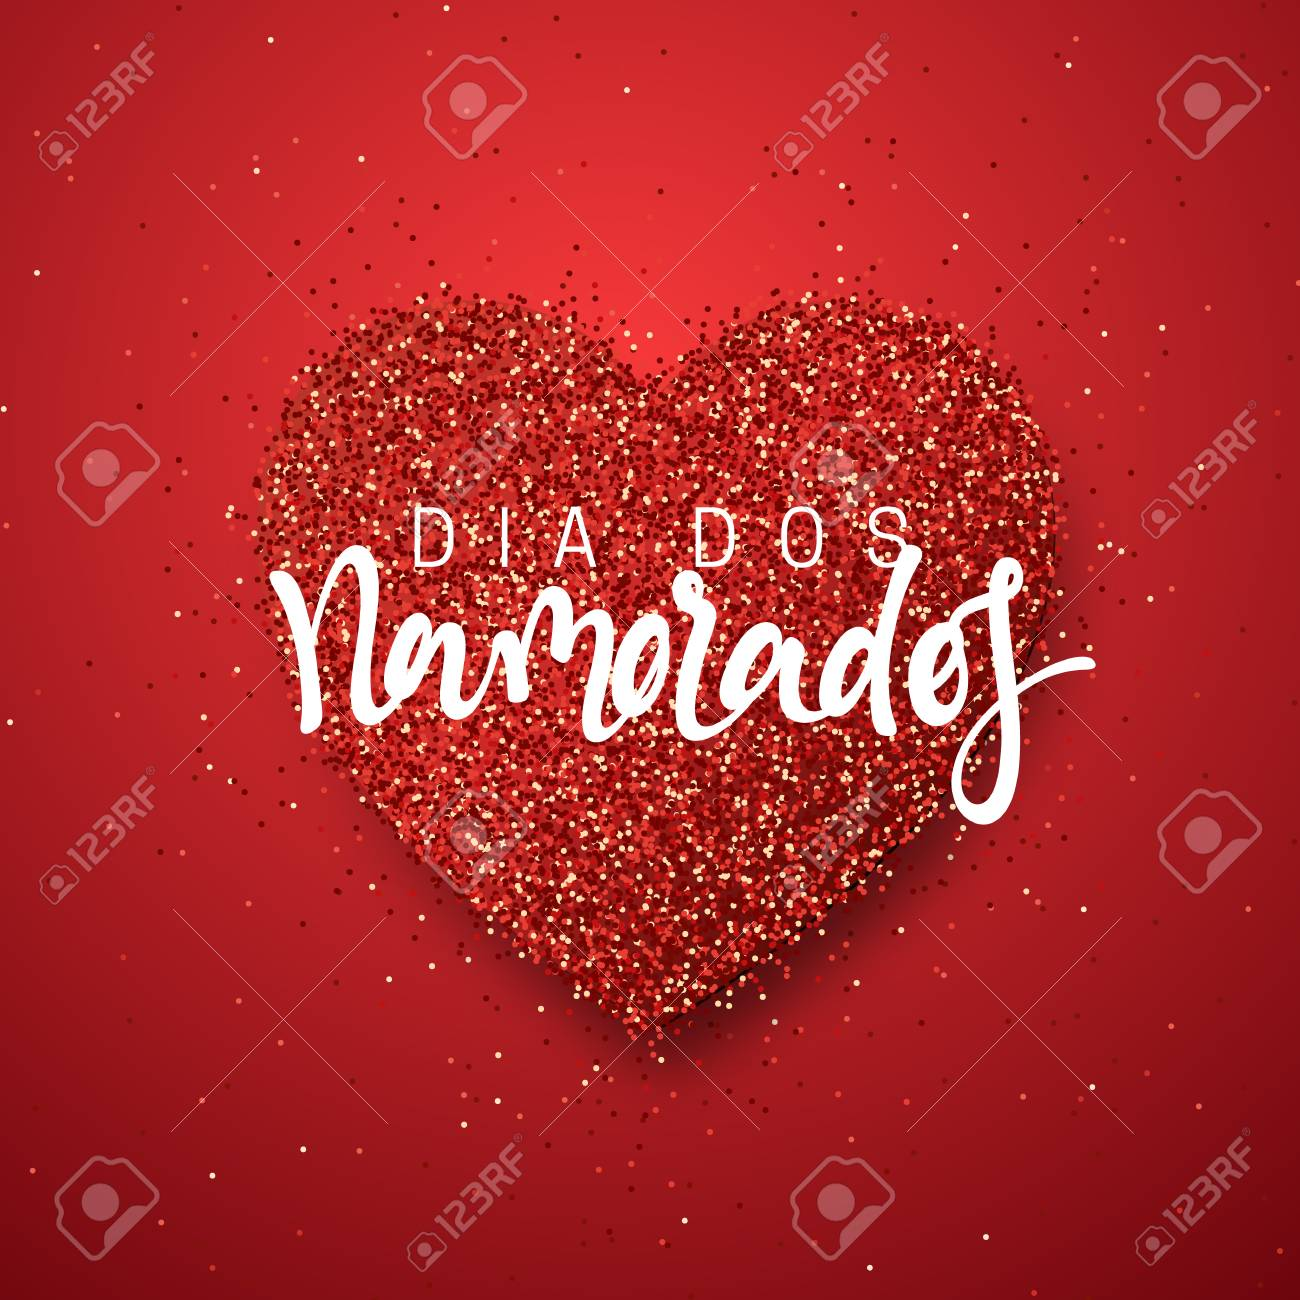 Happy valentines day lettering french inscription handmade happy valentines day lettering french inscription handmade dia dos namorados holiday greeting card m4hsunfo